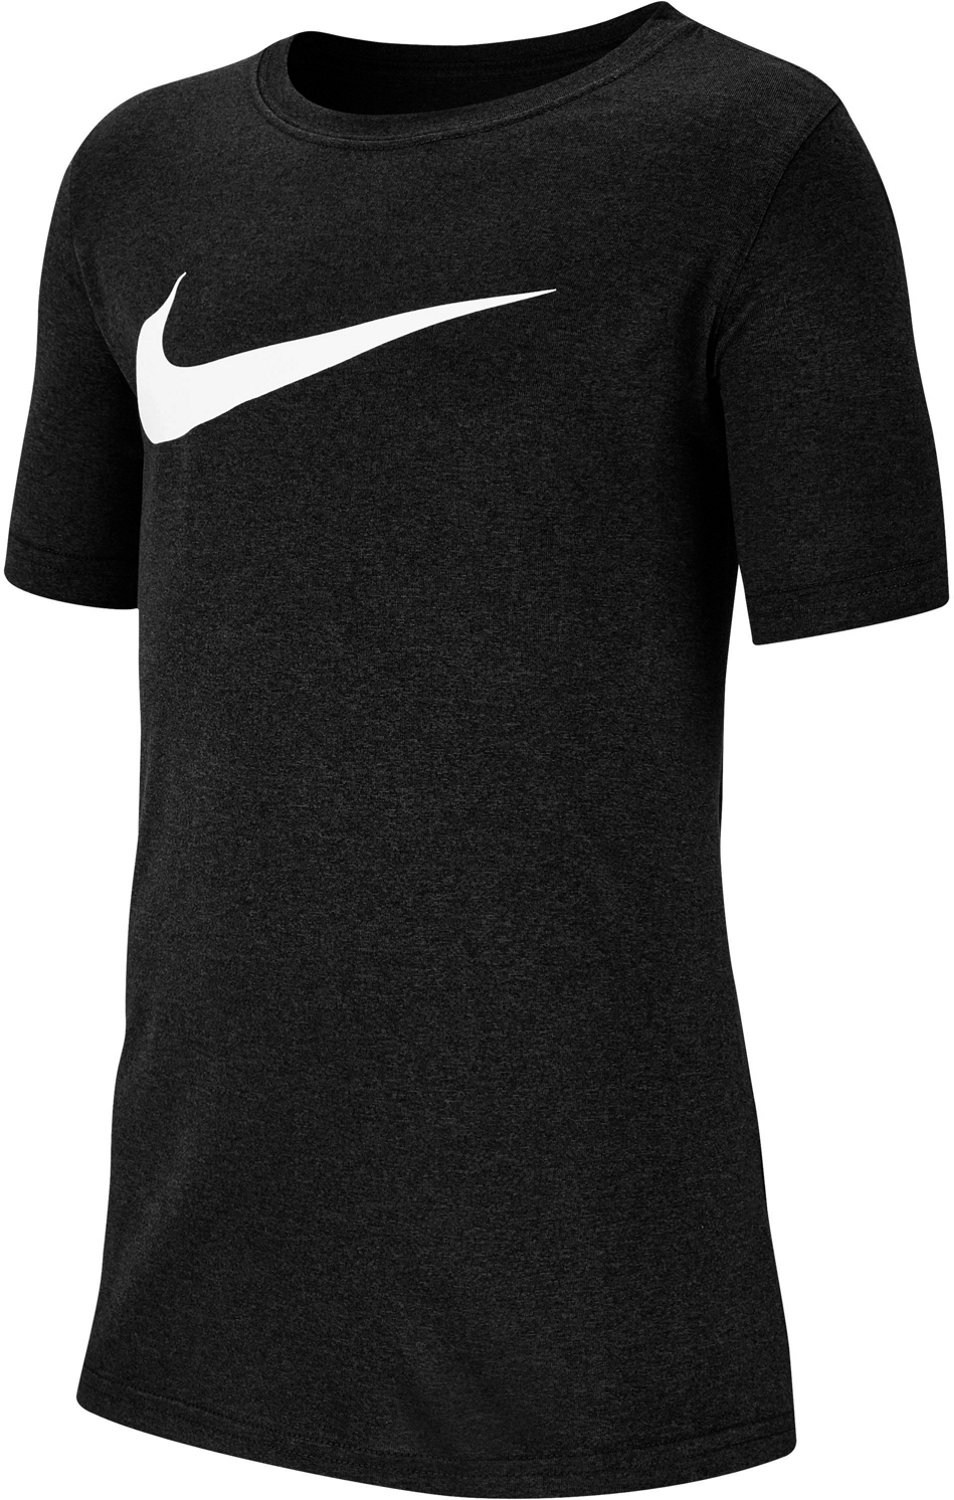 0acf9606e9 Display product reviews for Nike Boys' Legend Swoosh T-shirt